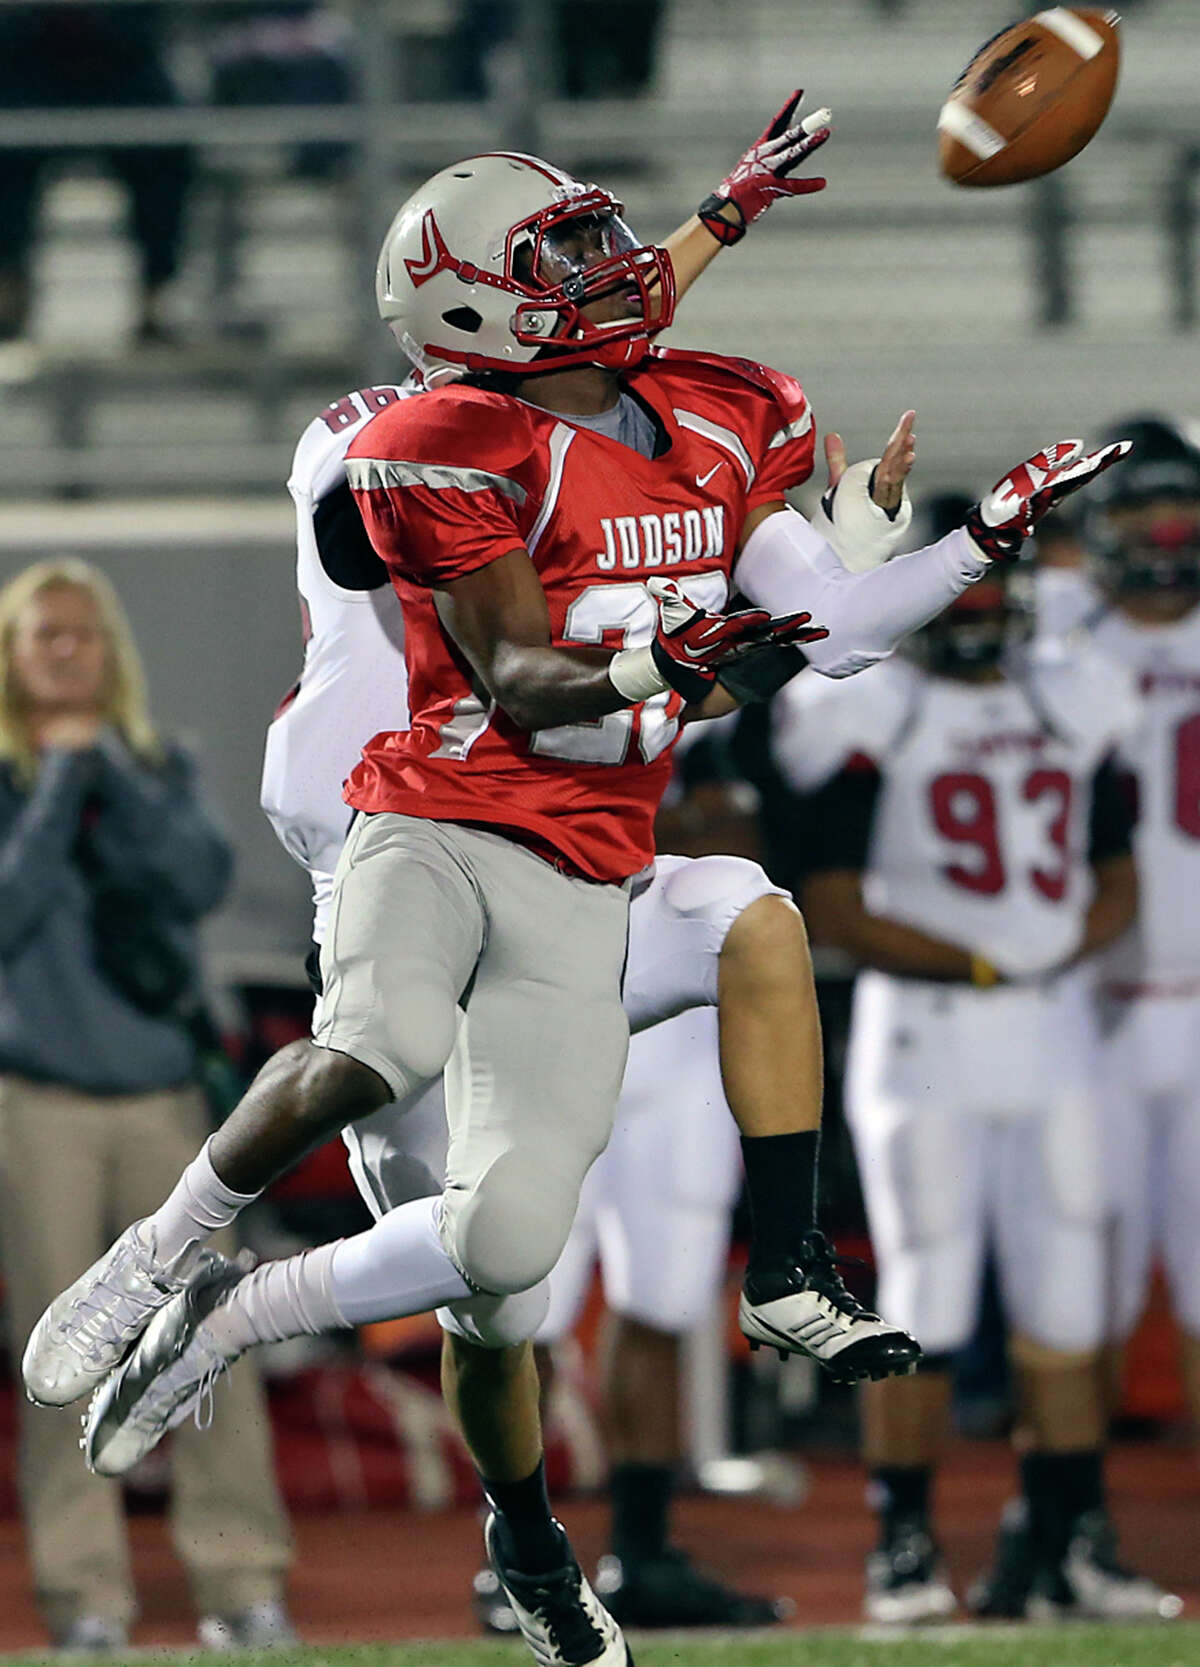 Rocket defensive back D'mauria Martin goes up to pick off a long pass intended for Eric Perez as Judson hosts Canyon at Rutledge Stadium on November 1, 2013.